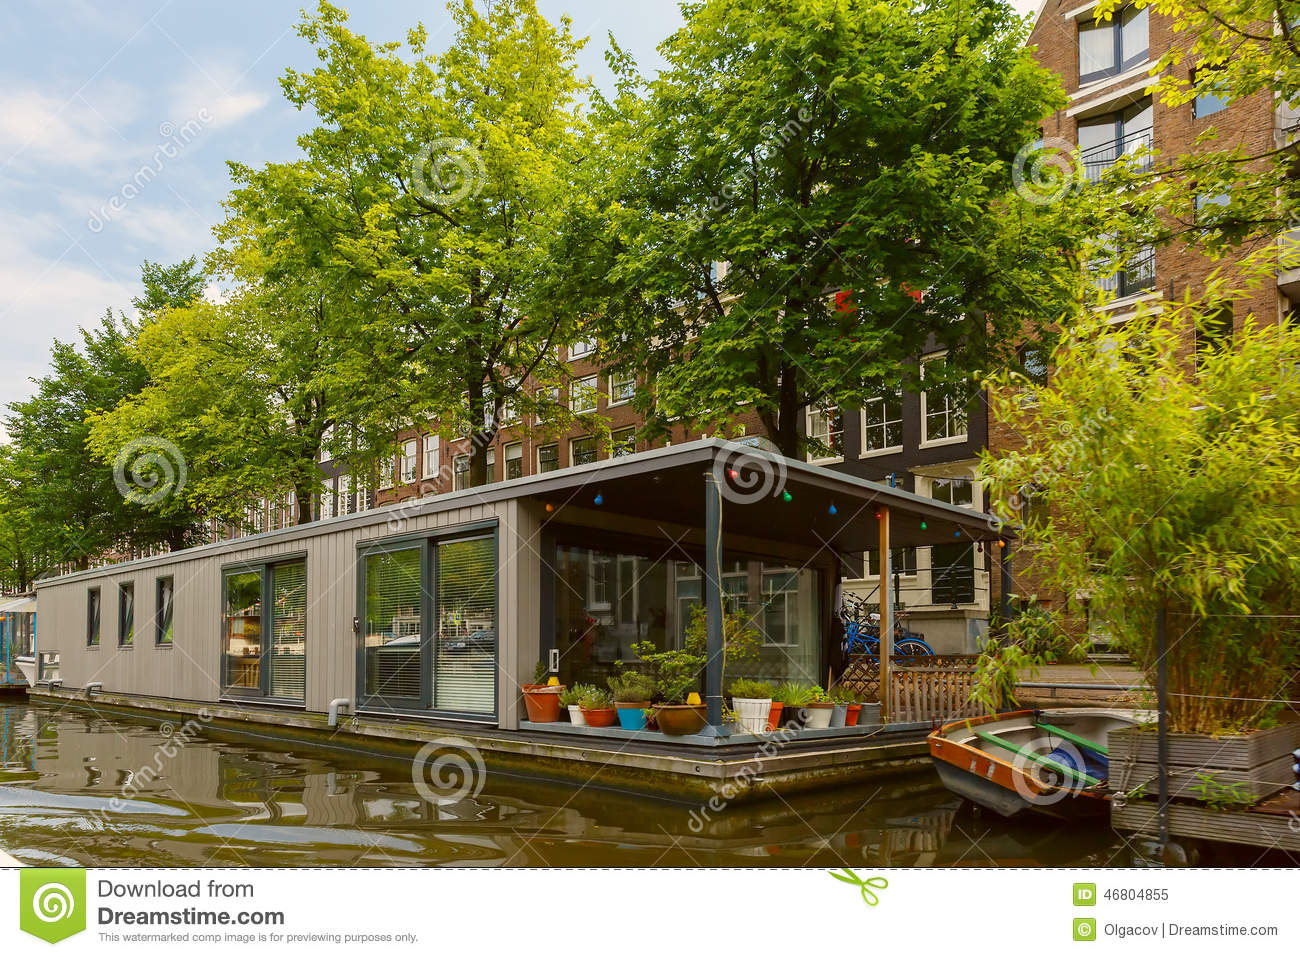 stadsmening van het kanaal van amsterdam en woonboot holland nederland stock afbeelding. Black Bedroom Furniture Sets. Home Design Ideas